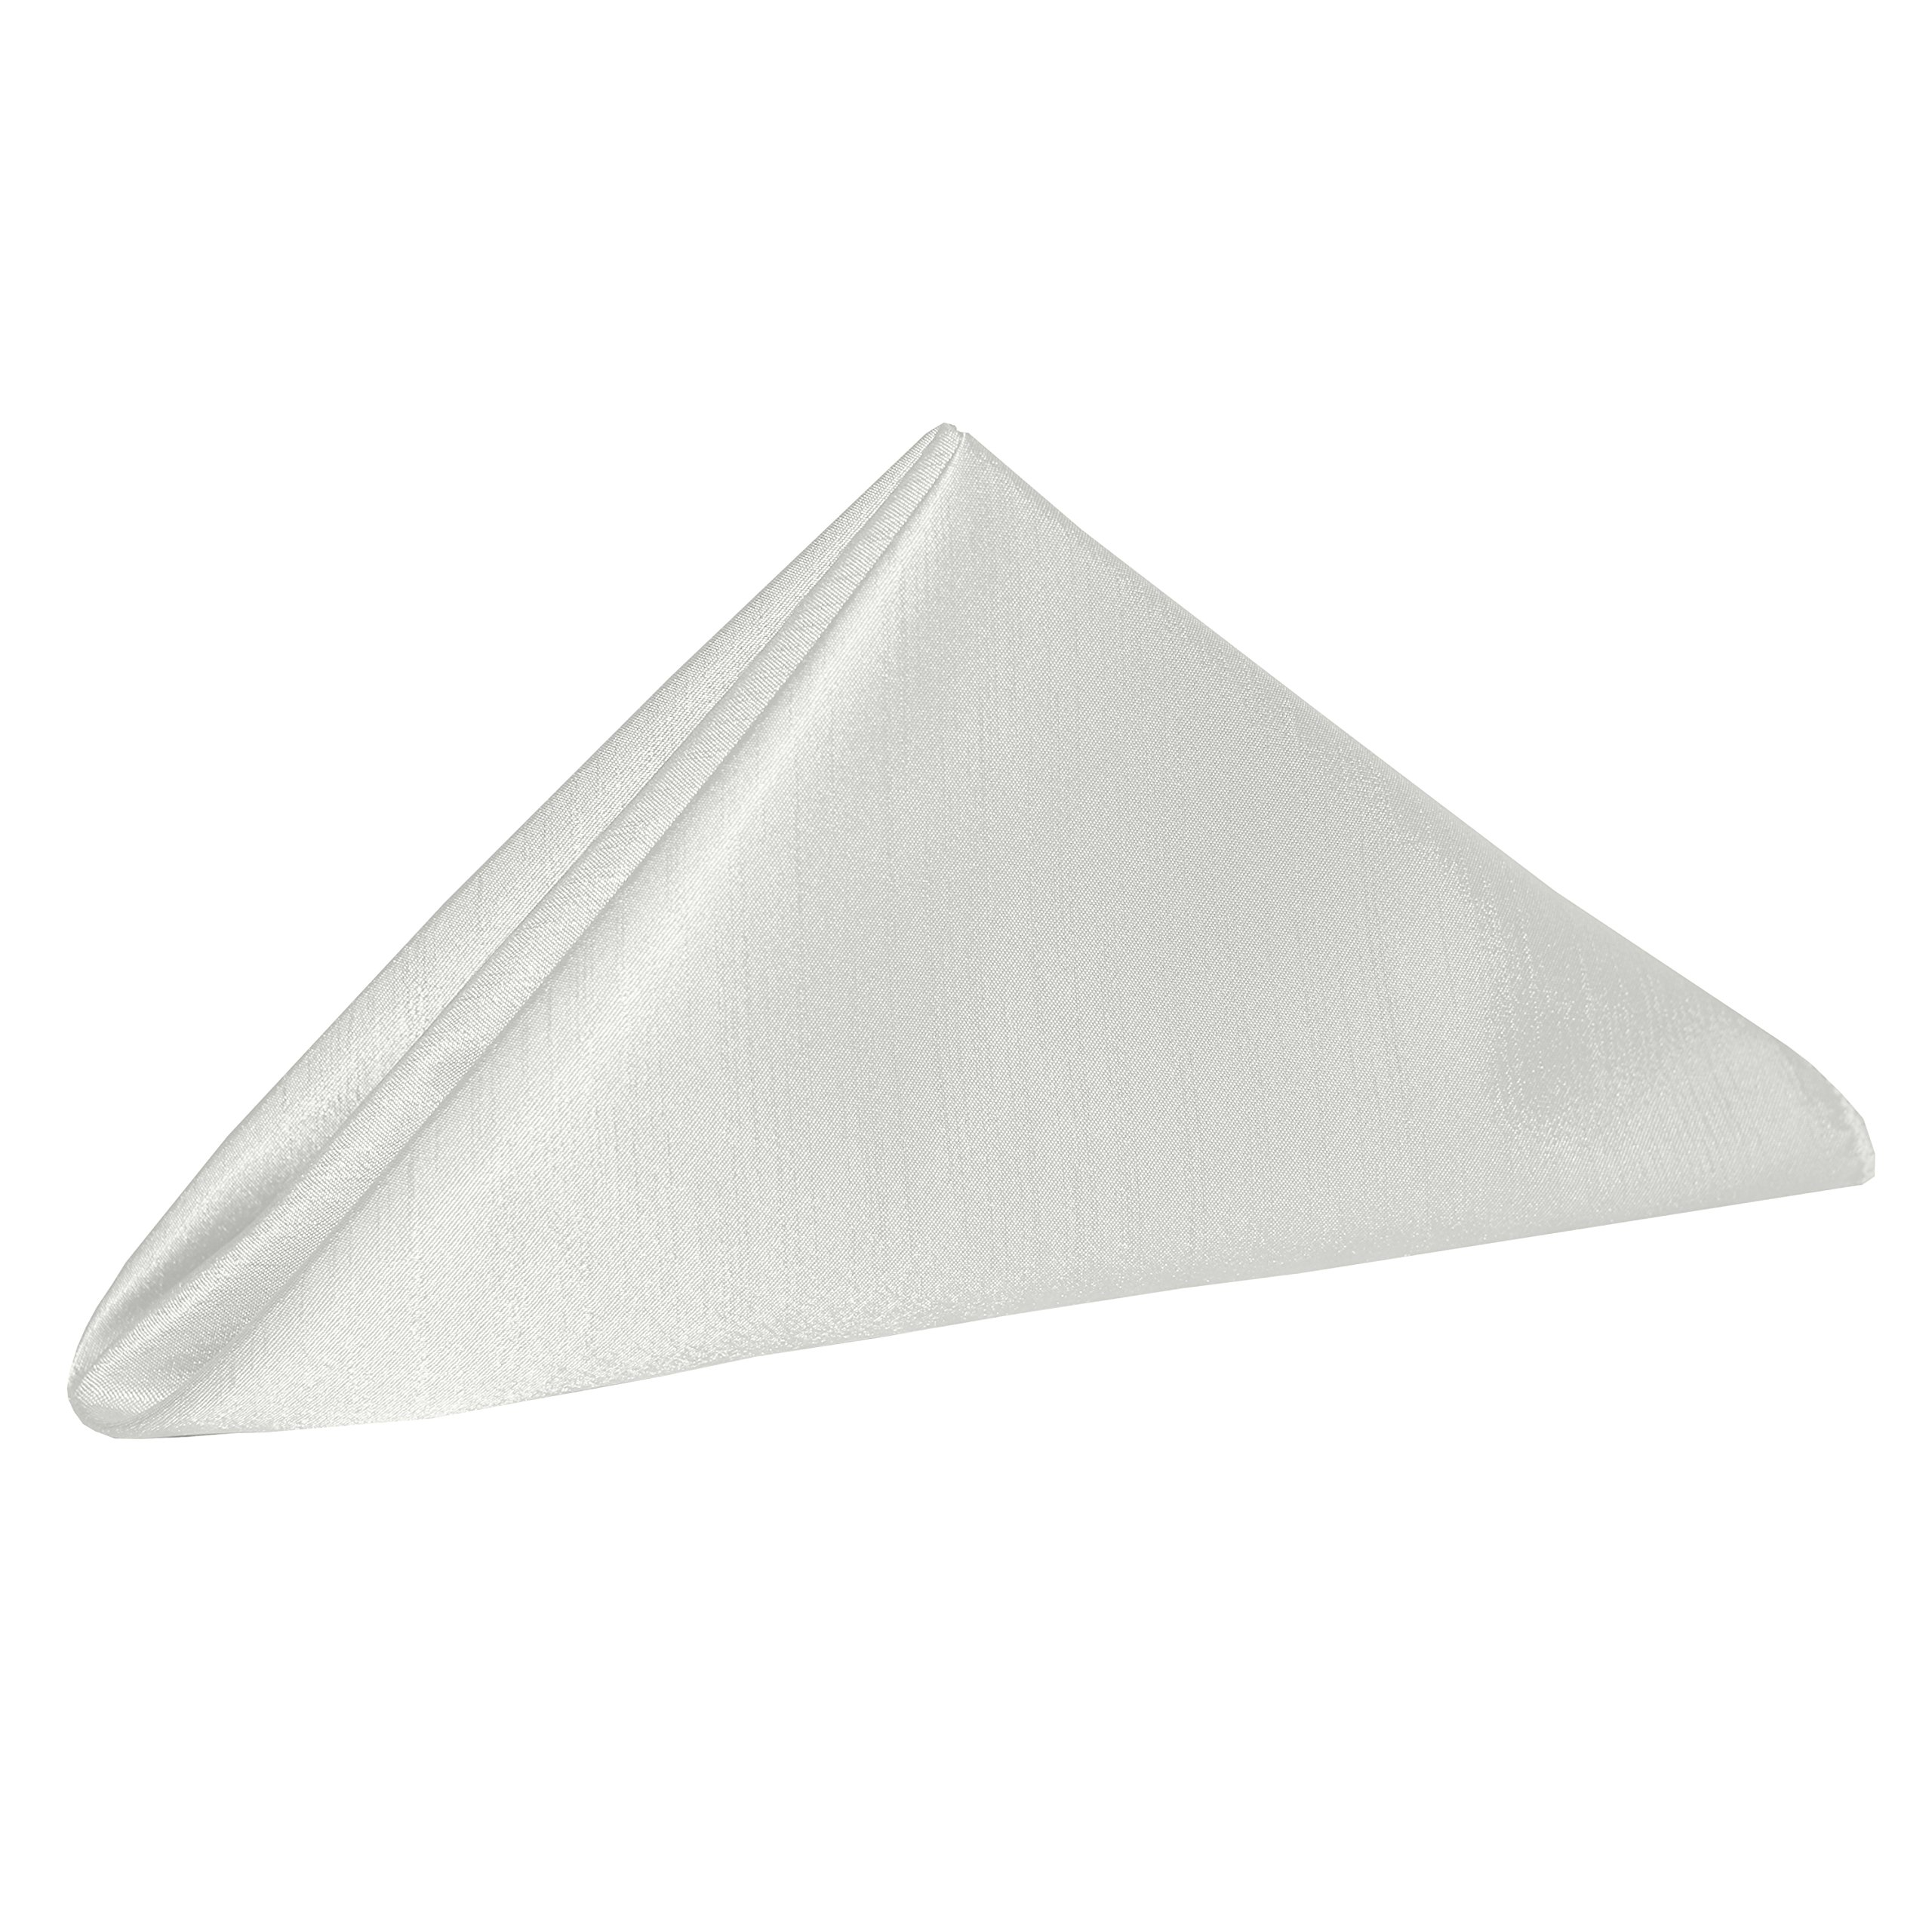 Ultimate Textile -5 Dozen- Reversible Shantung Satin - Majestic 20 x 20-Inch Cloth Dinner Napkins, White by Ultimate Textile (Image #2)